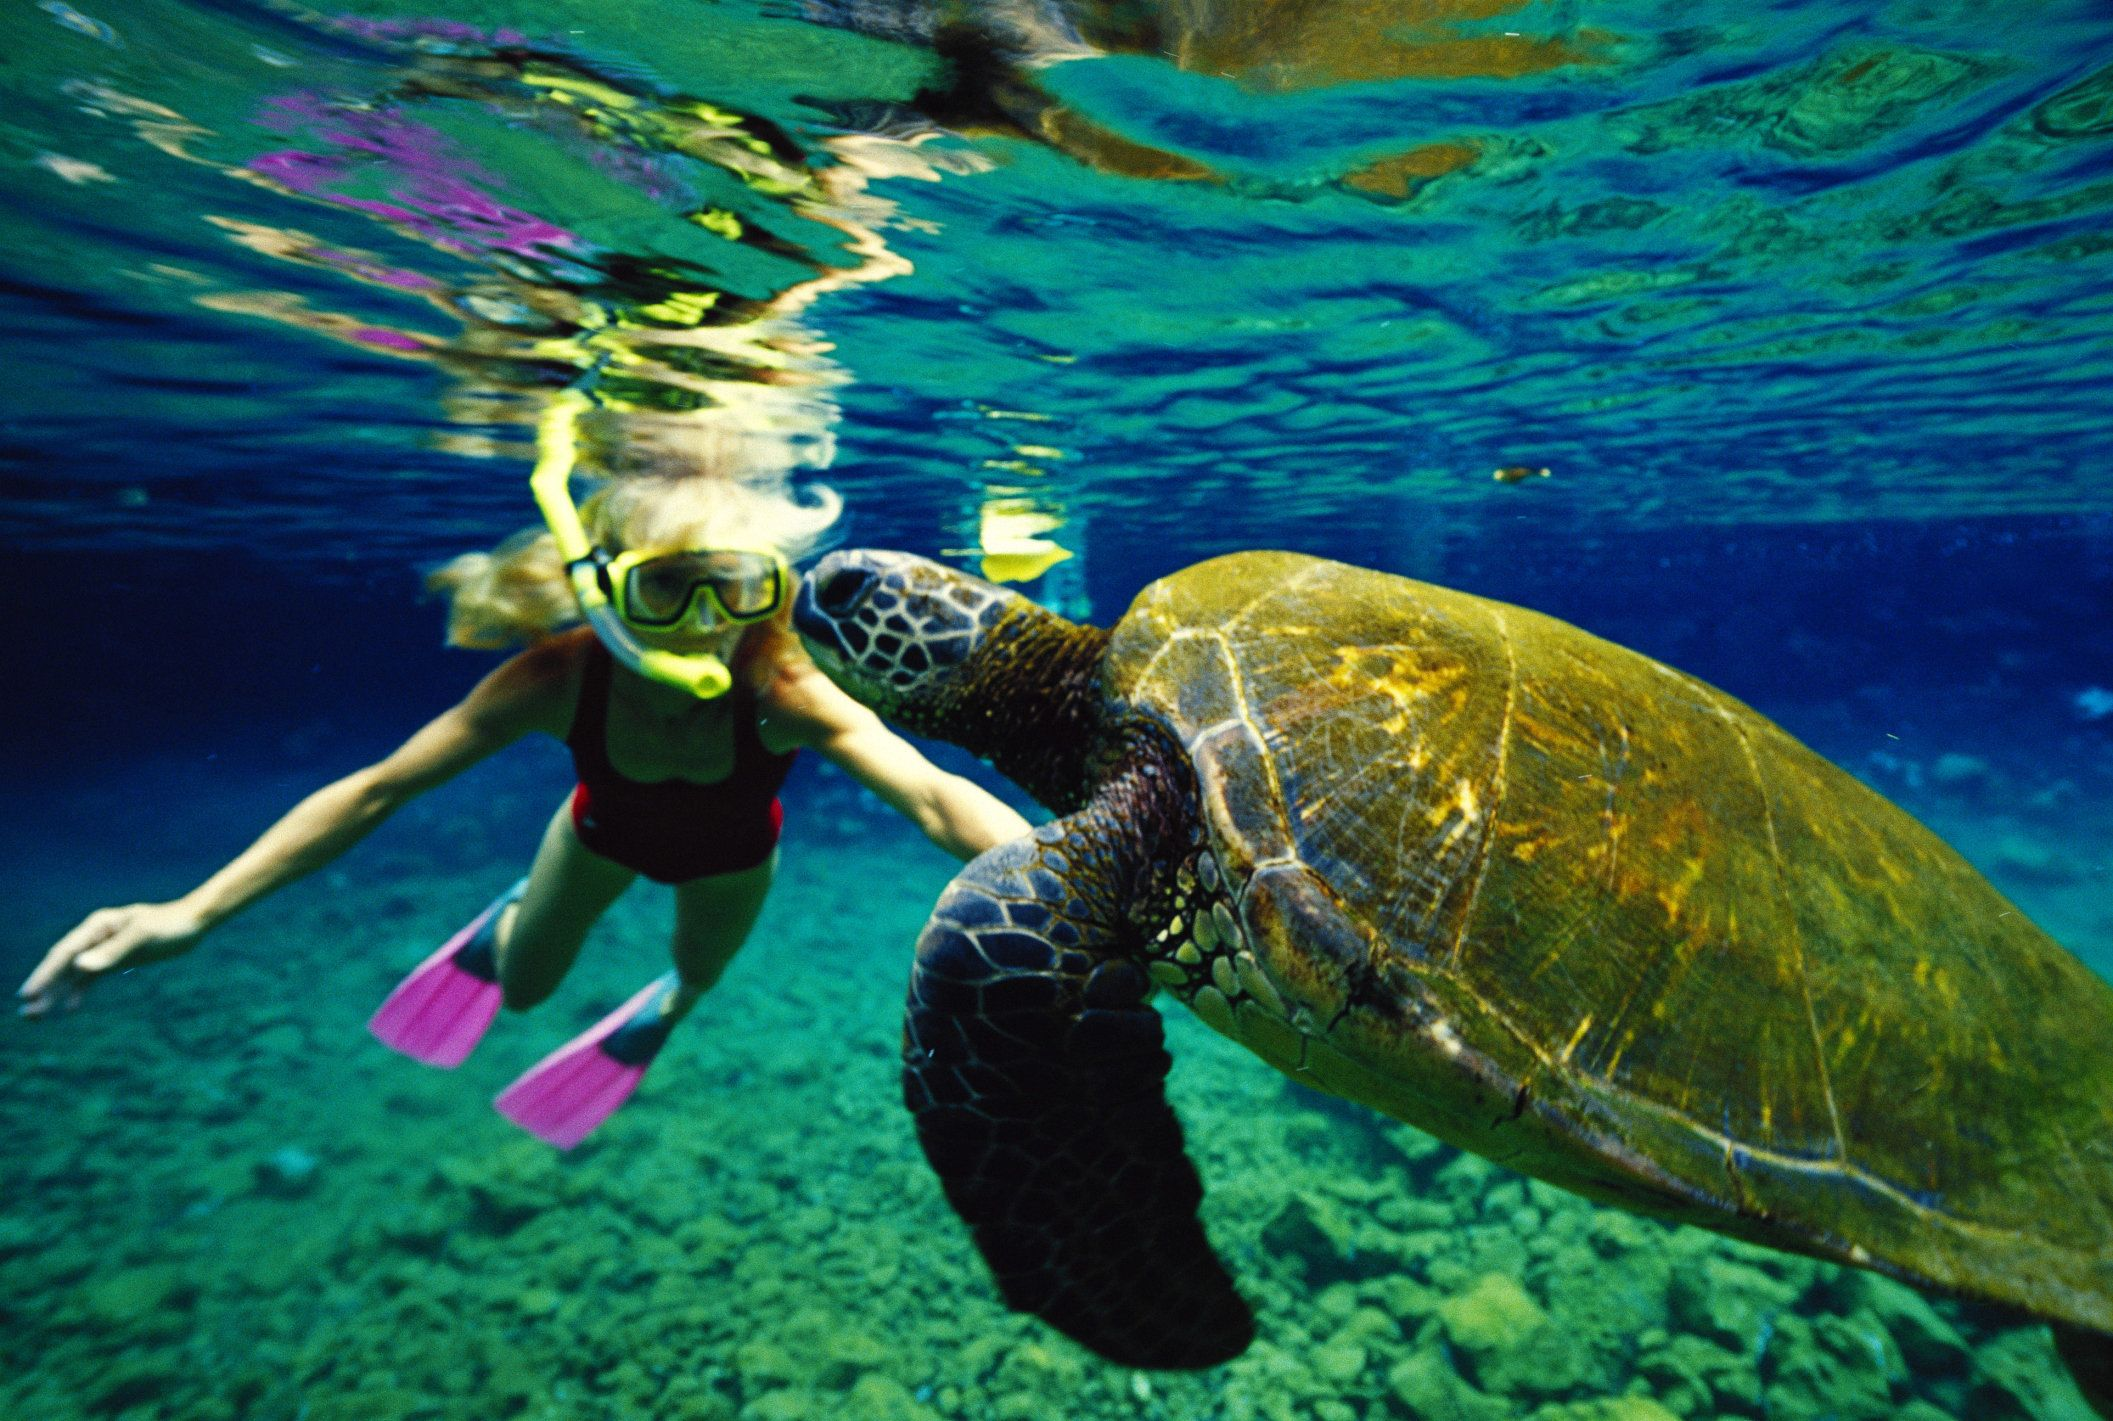 Hawaii closeup of green sea turtle (Chelonia mydas) with girl petting and snorkeling